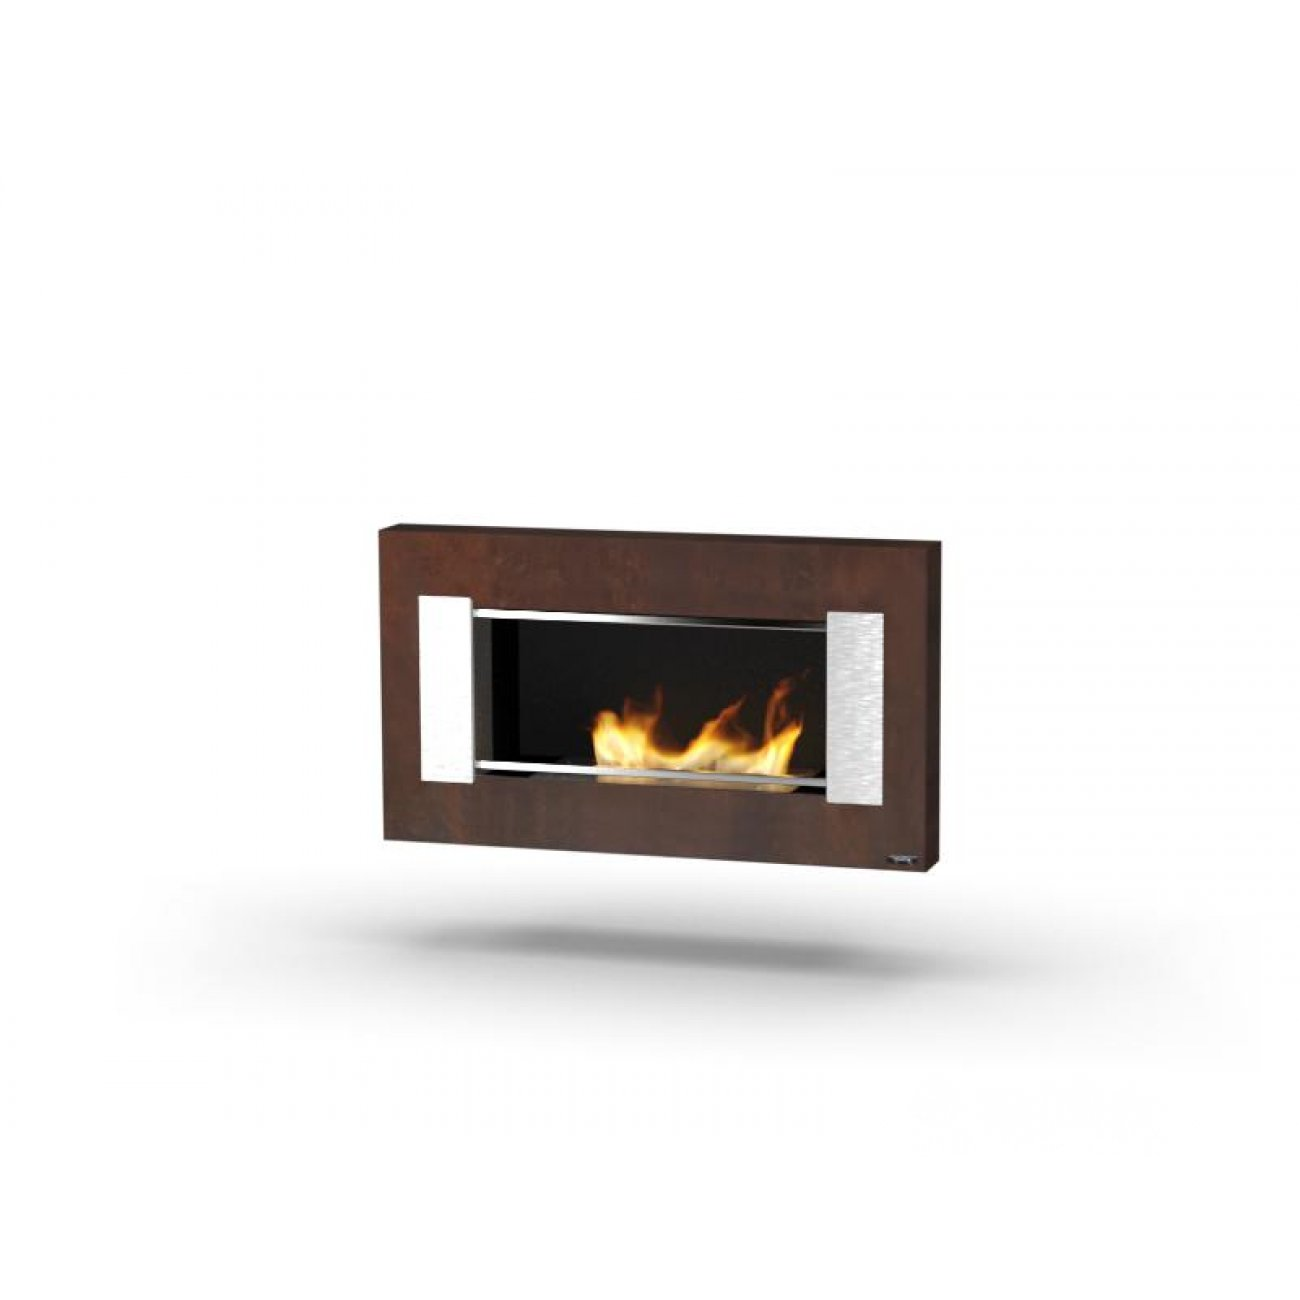 bioethanol wandkamin glammfire mito small. Black Bedroom Furniture Sets. Home Design Ideas